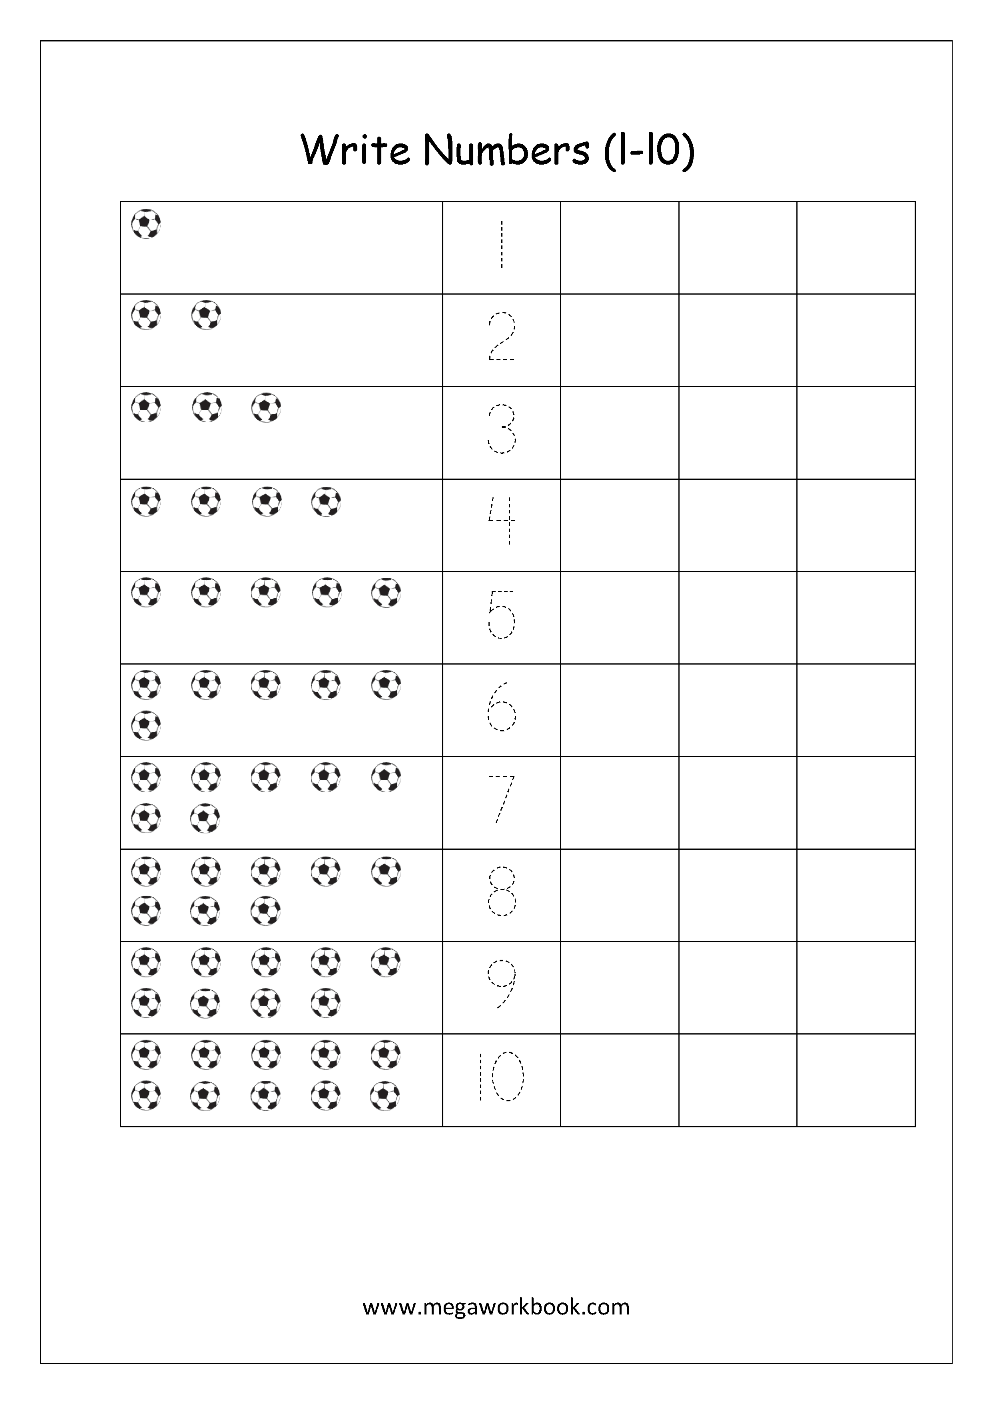 Math Worksheet Number Writing 1 to 10 Writing numbers